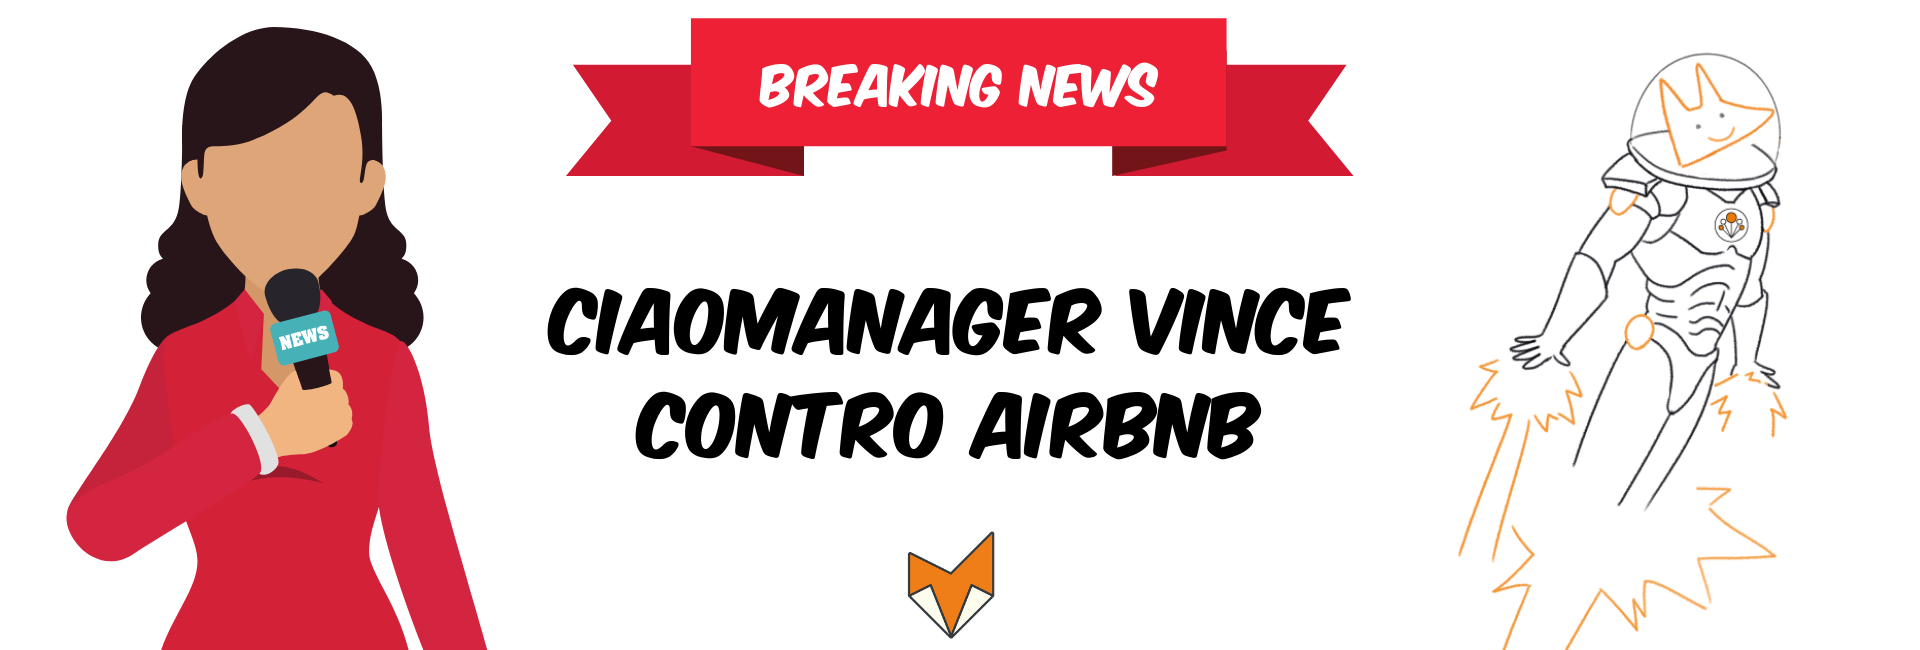 Ciaomanager vince contro Airbnb